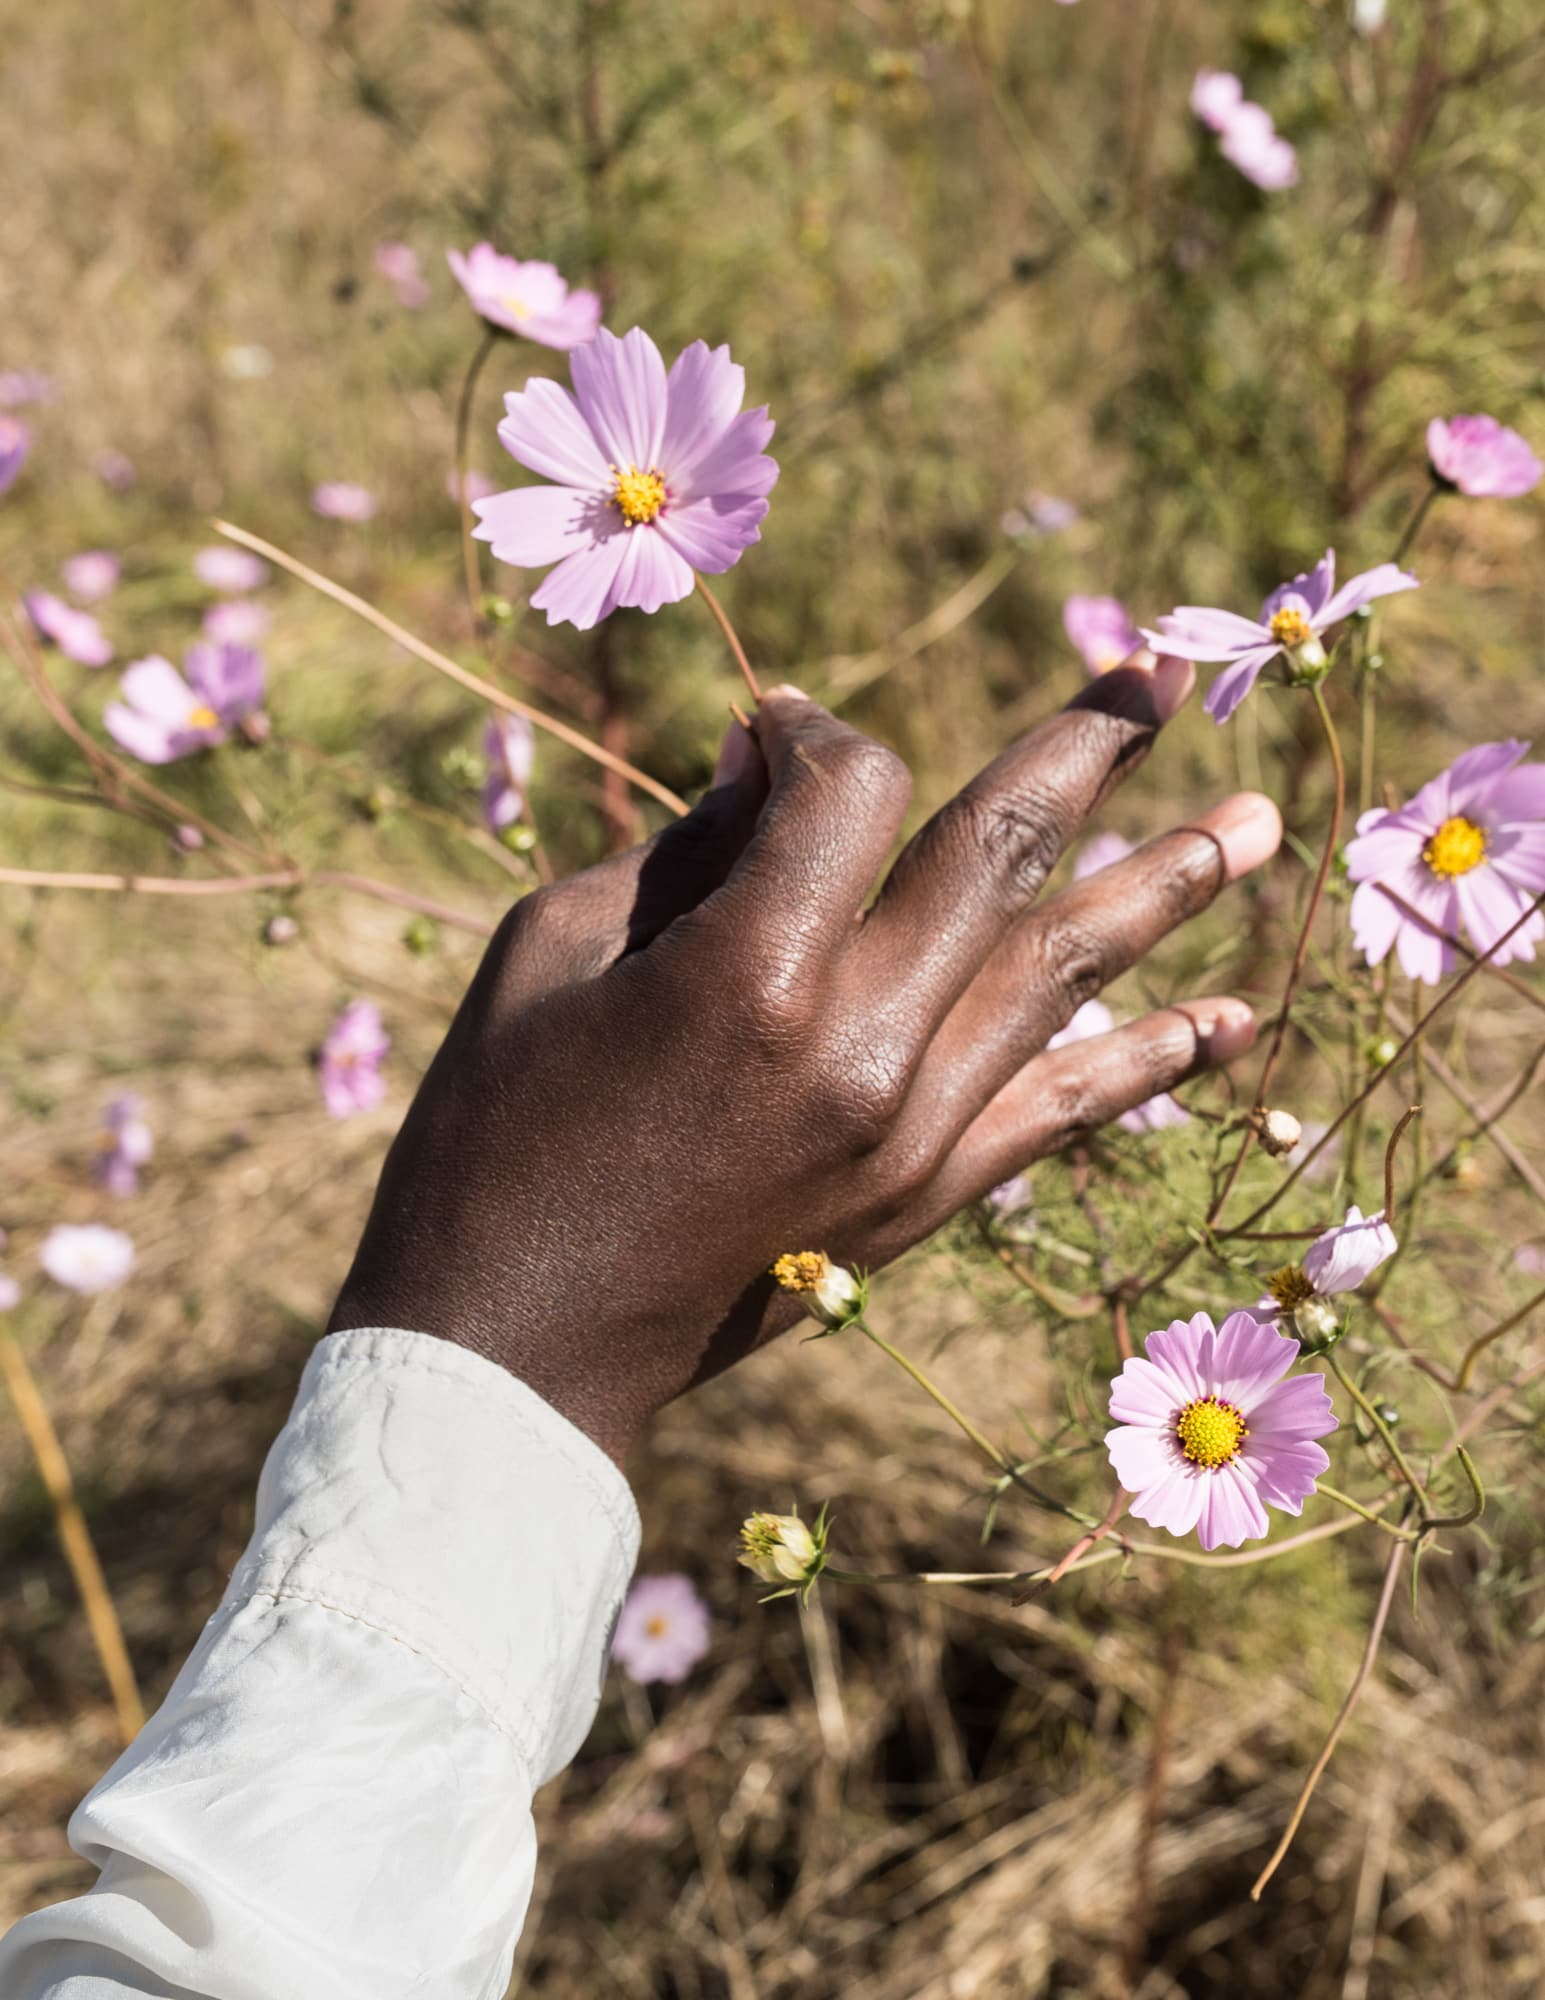 How to get home — Plucking Flowers and the Handsign for Extens